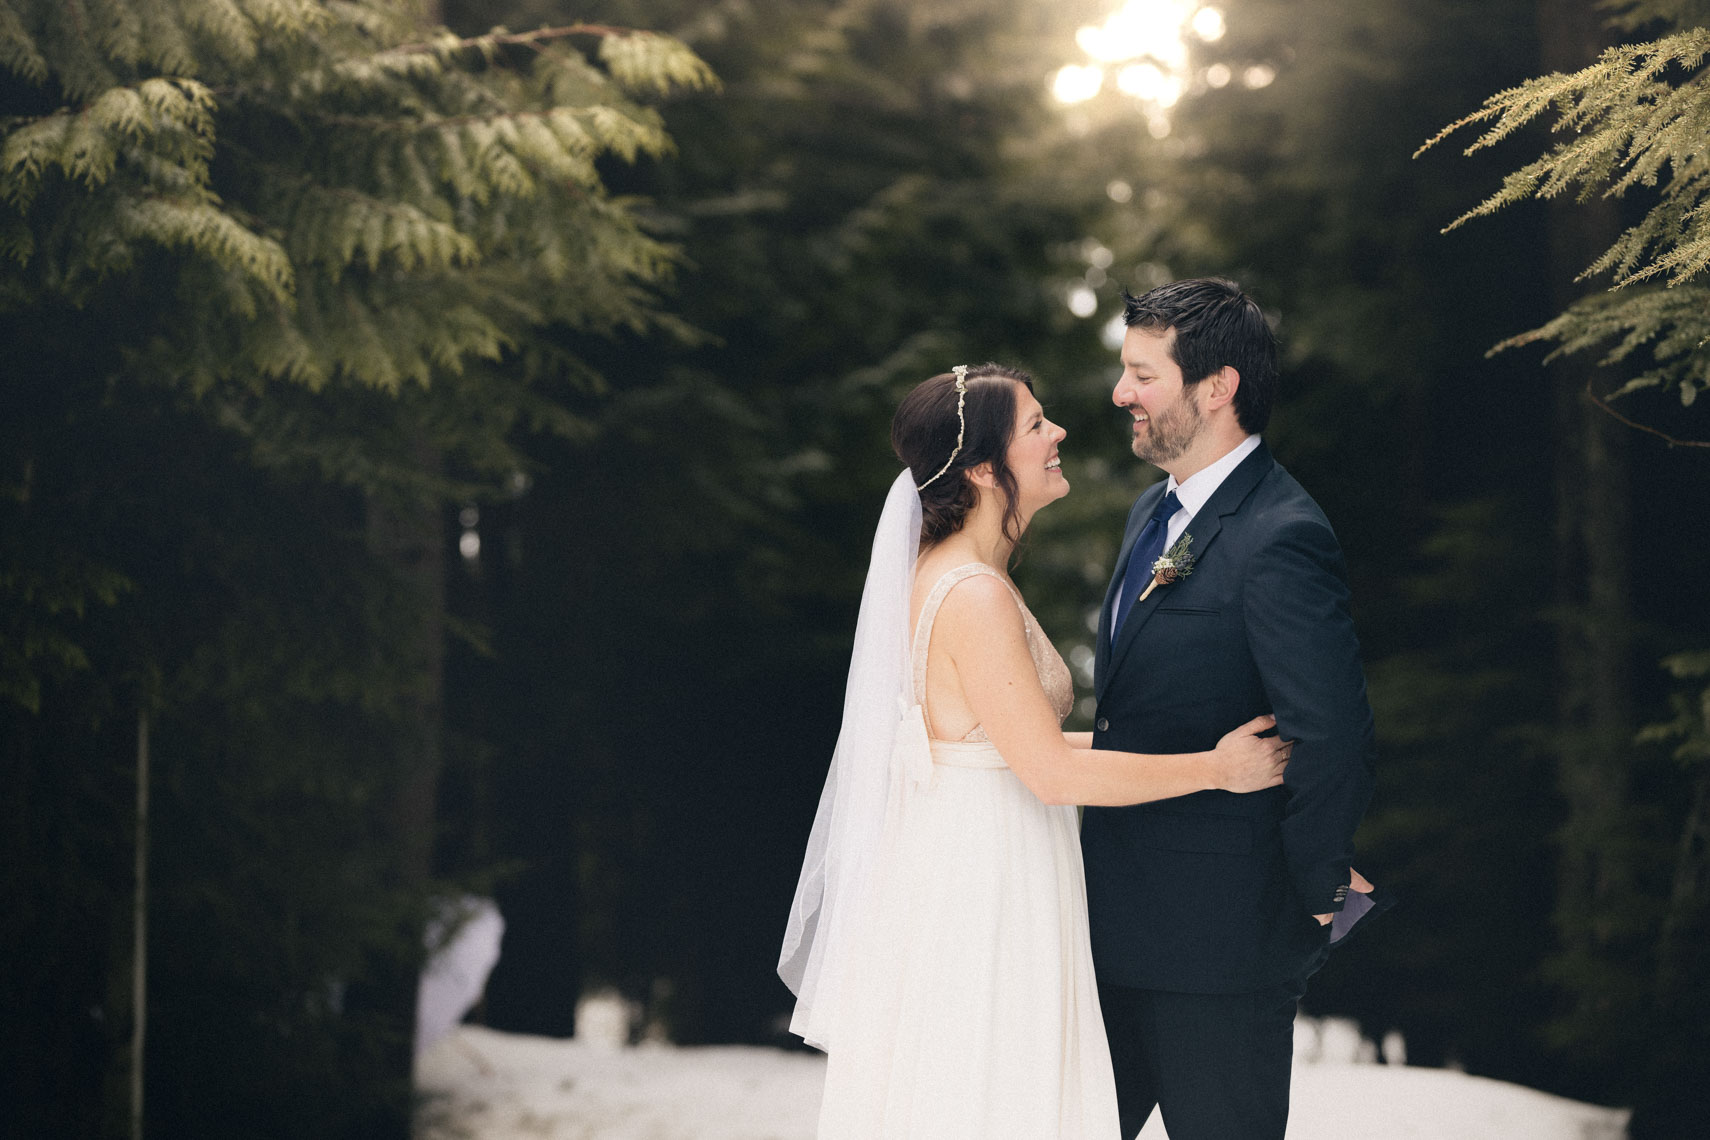 Bride and groom on a snowy forest path in Whistler before the ceremony